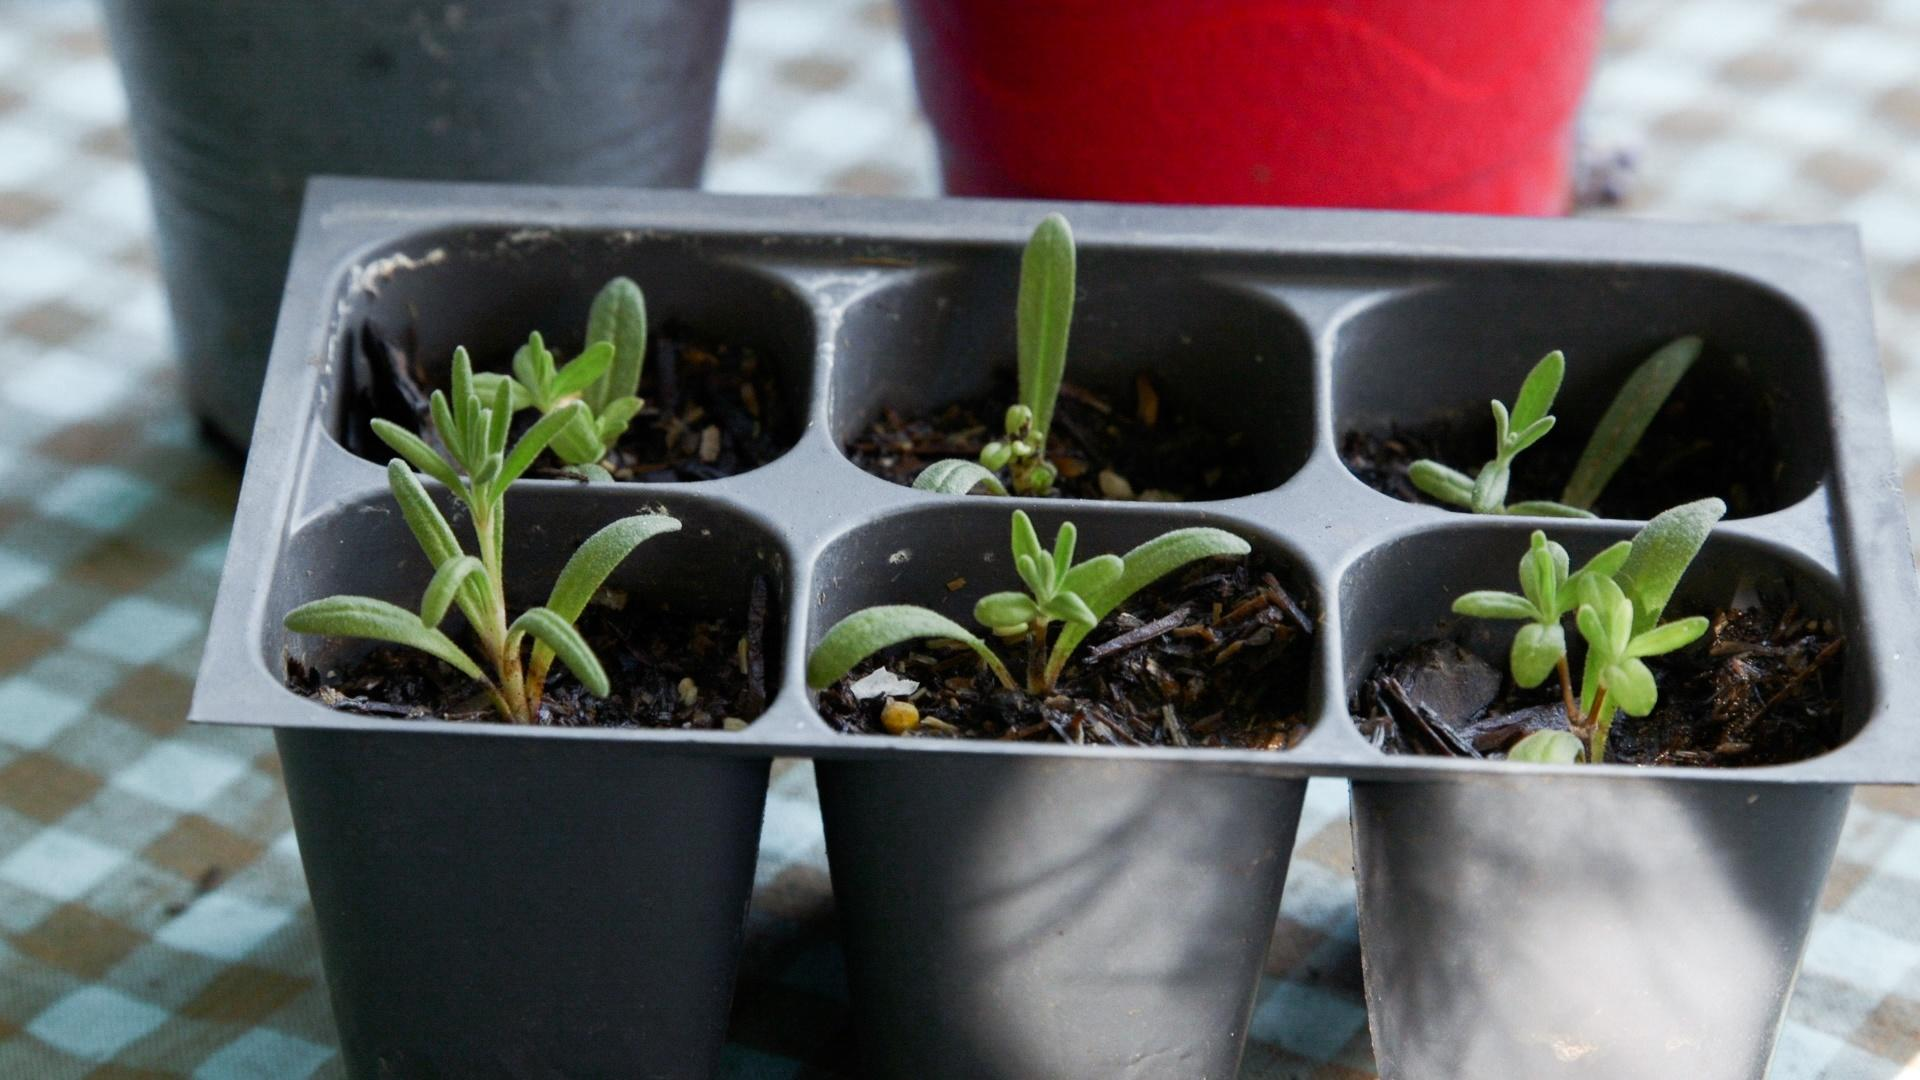 Eight week old lavender starts from propagation.